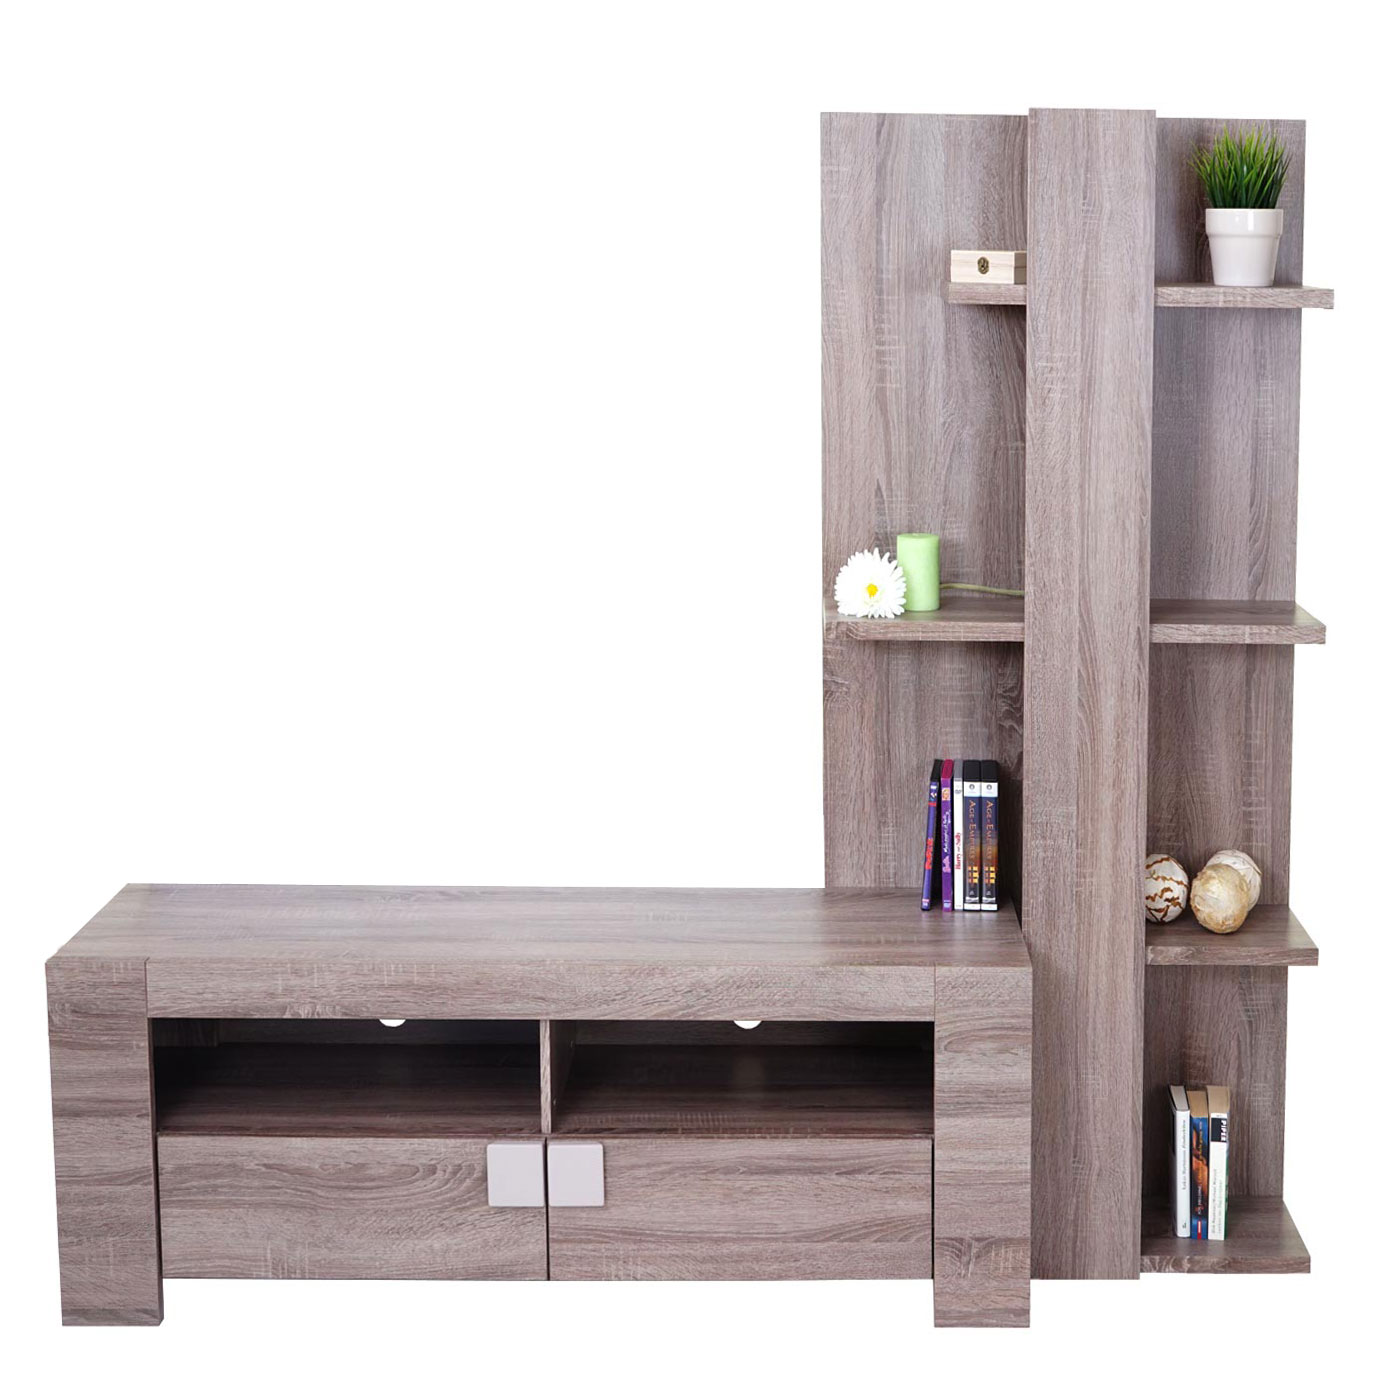 wohnwand lisburn wandregal raumteiler schrankwand 3d struktur 199x160x42cm ebay. Black Bedroom Furniture Sets. Home Design Ideas